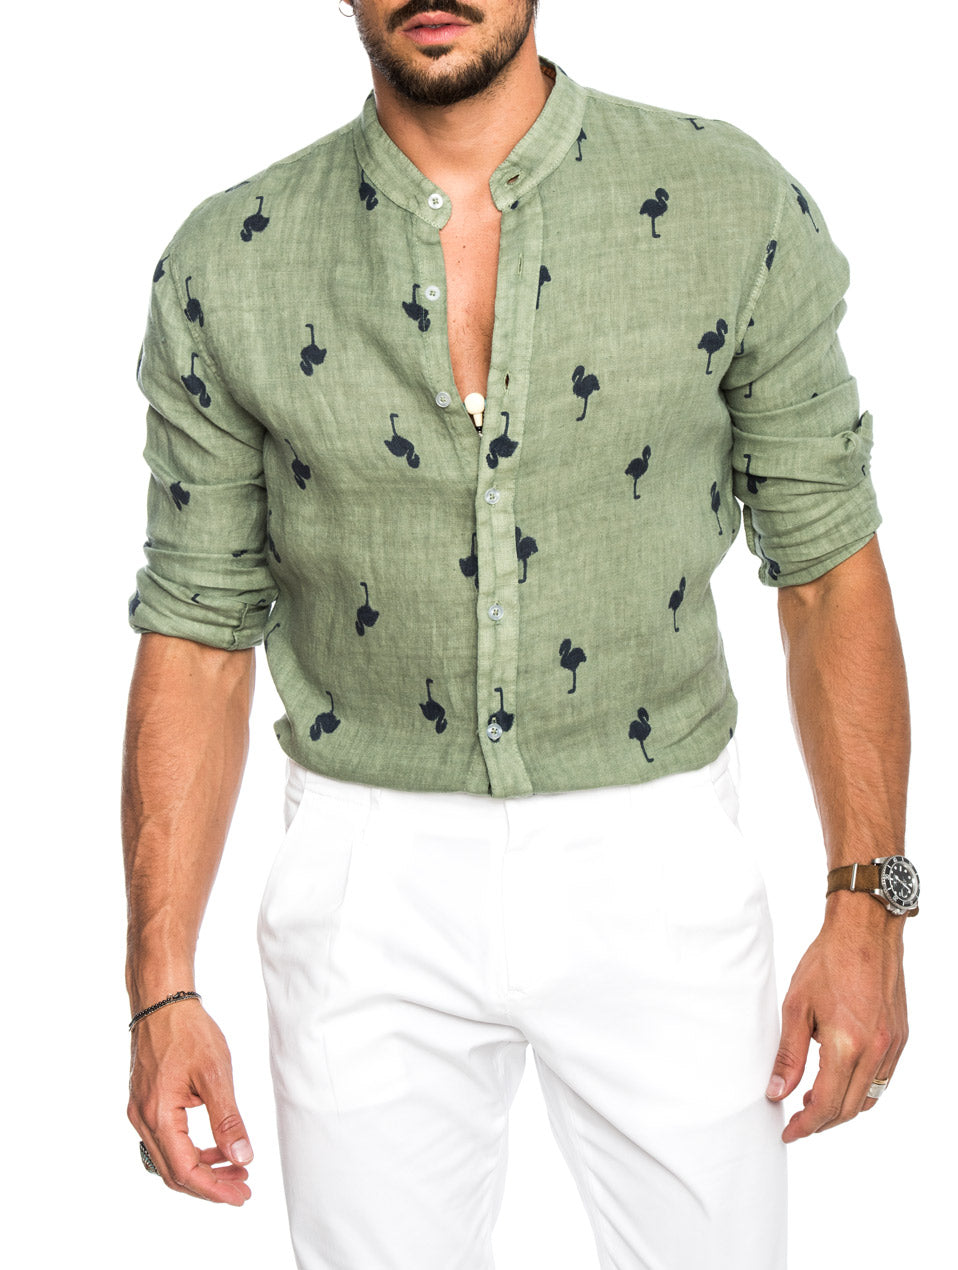 FLAMING SHIRT IN FOREST GREEN